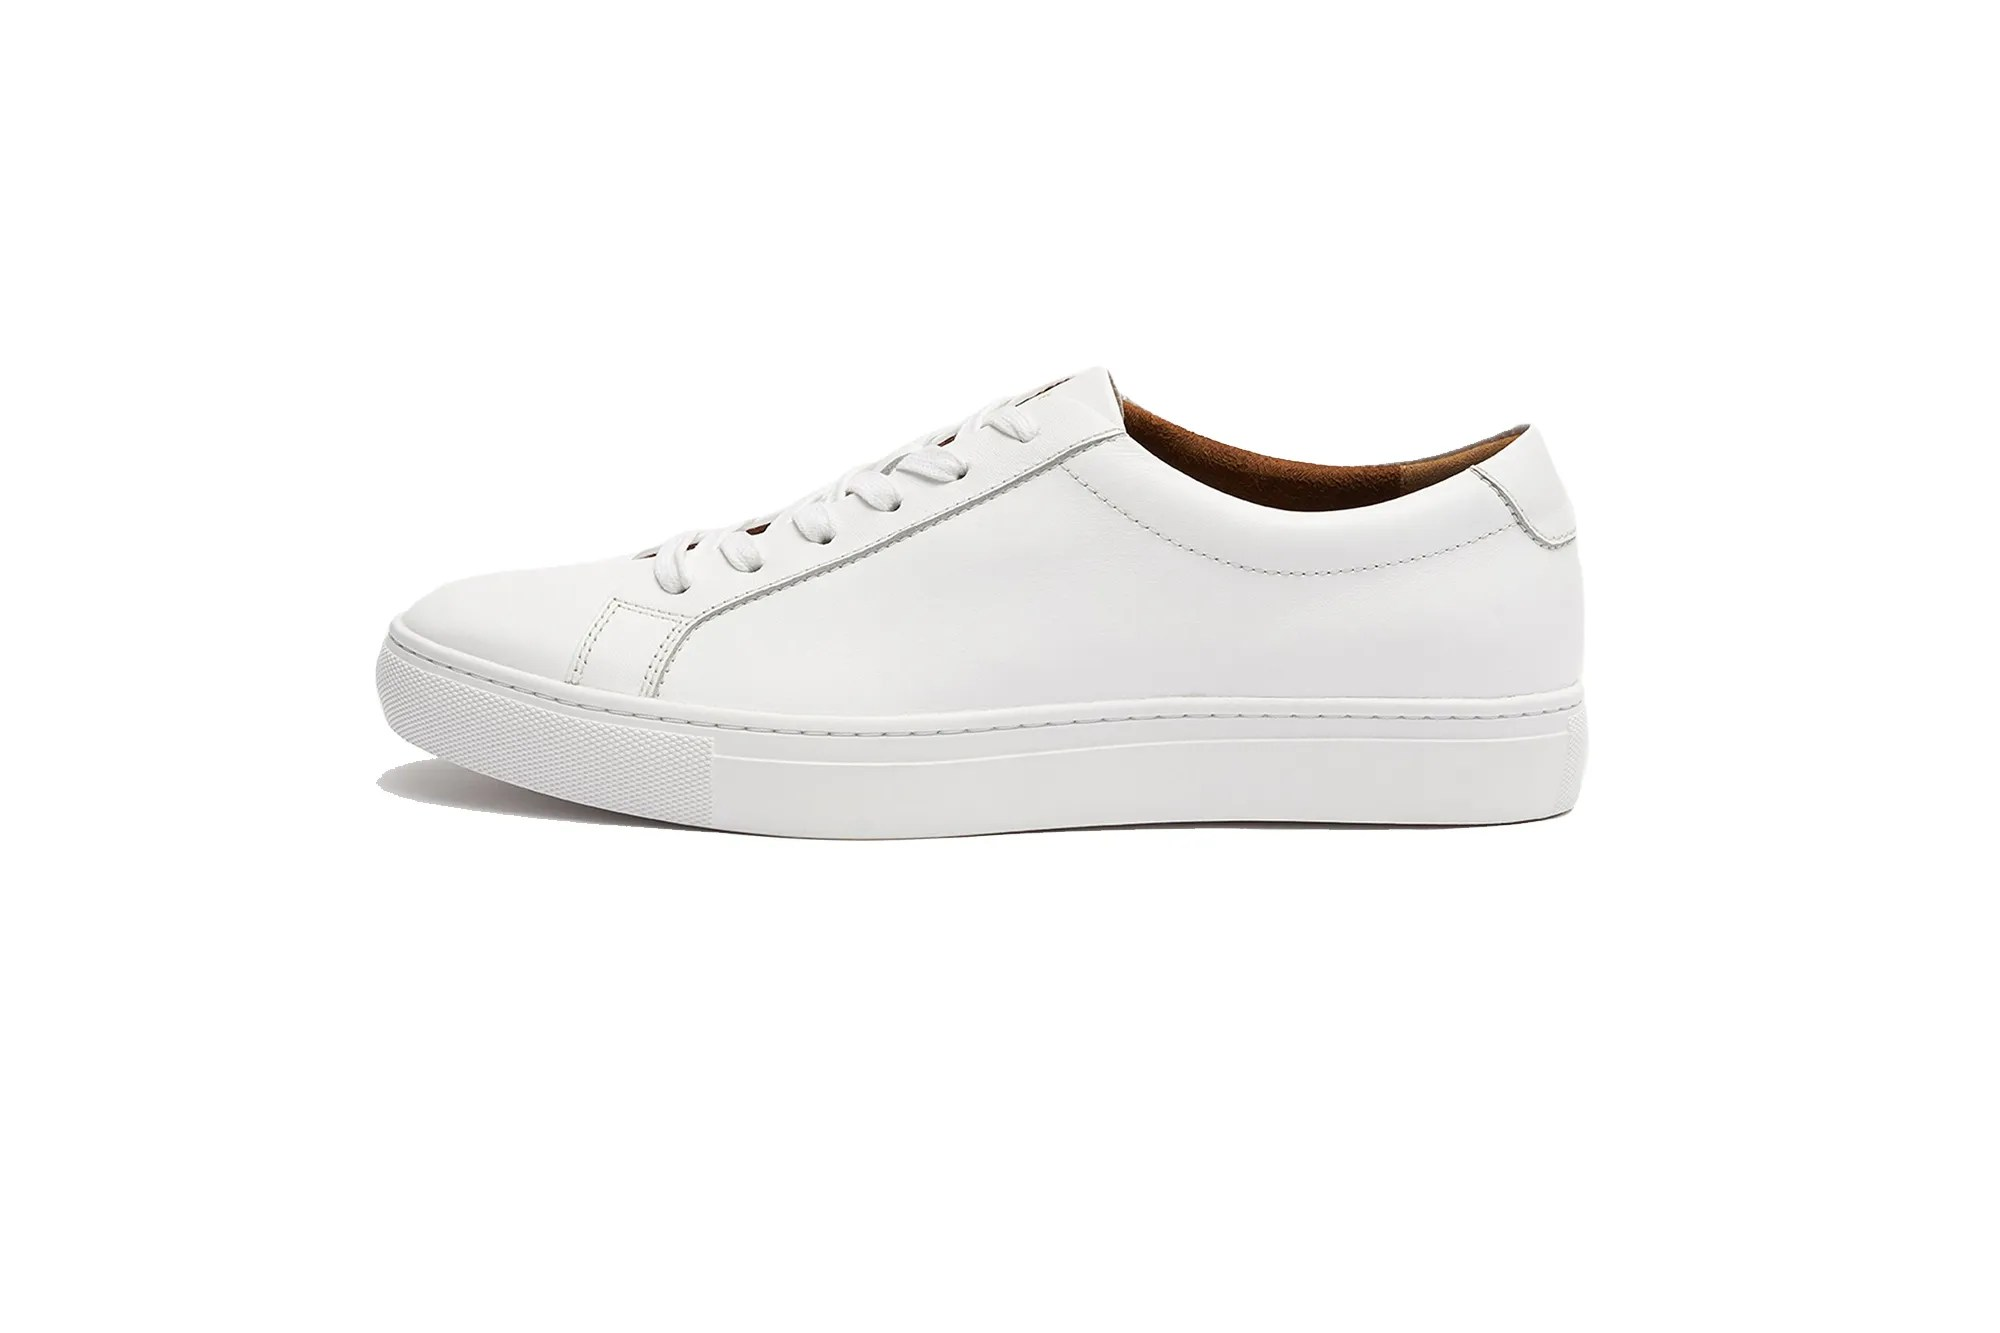 White Photo The Best White Sneakers For Under 100 Gq